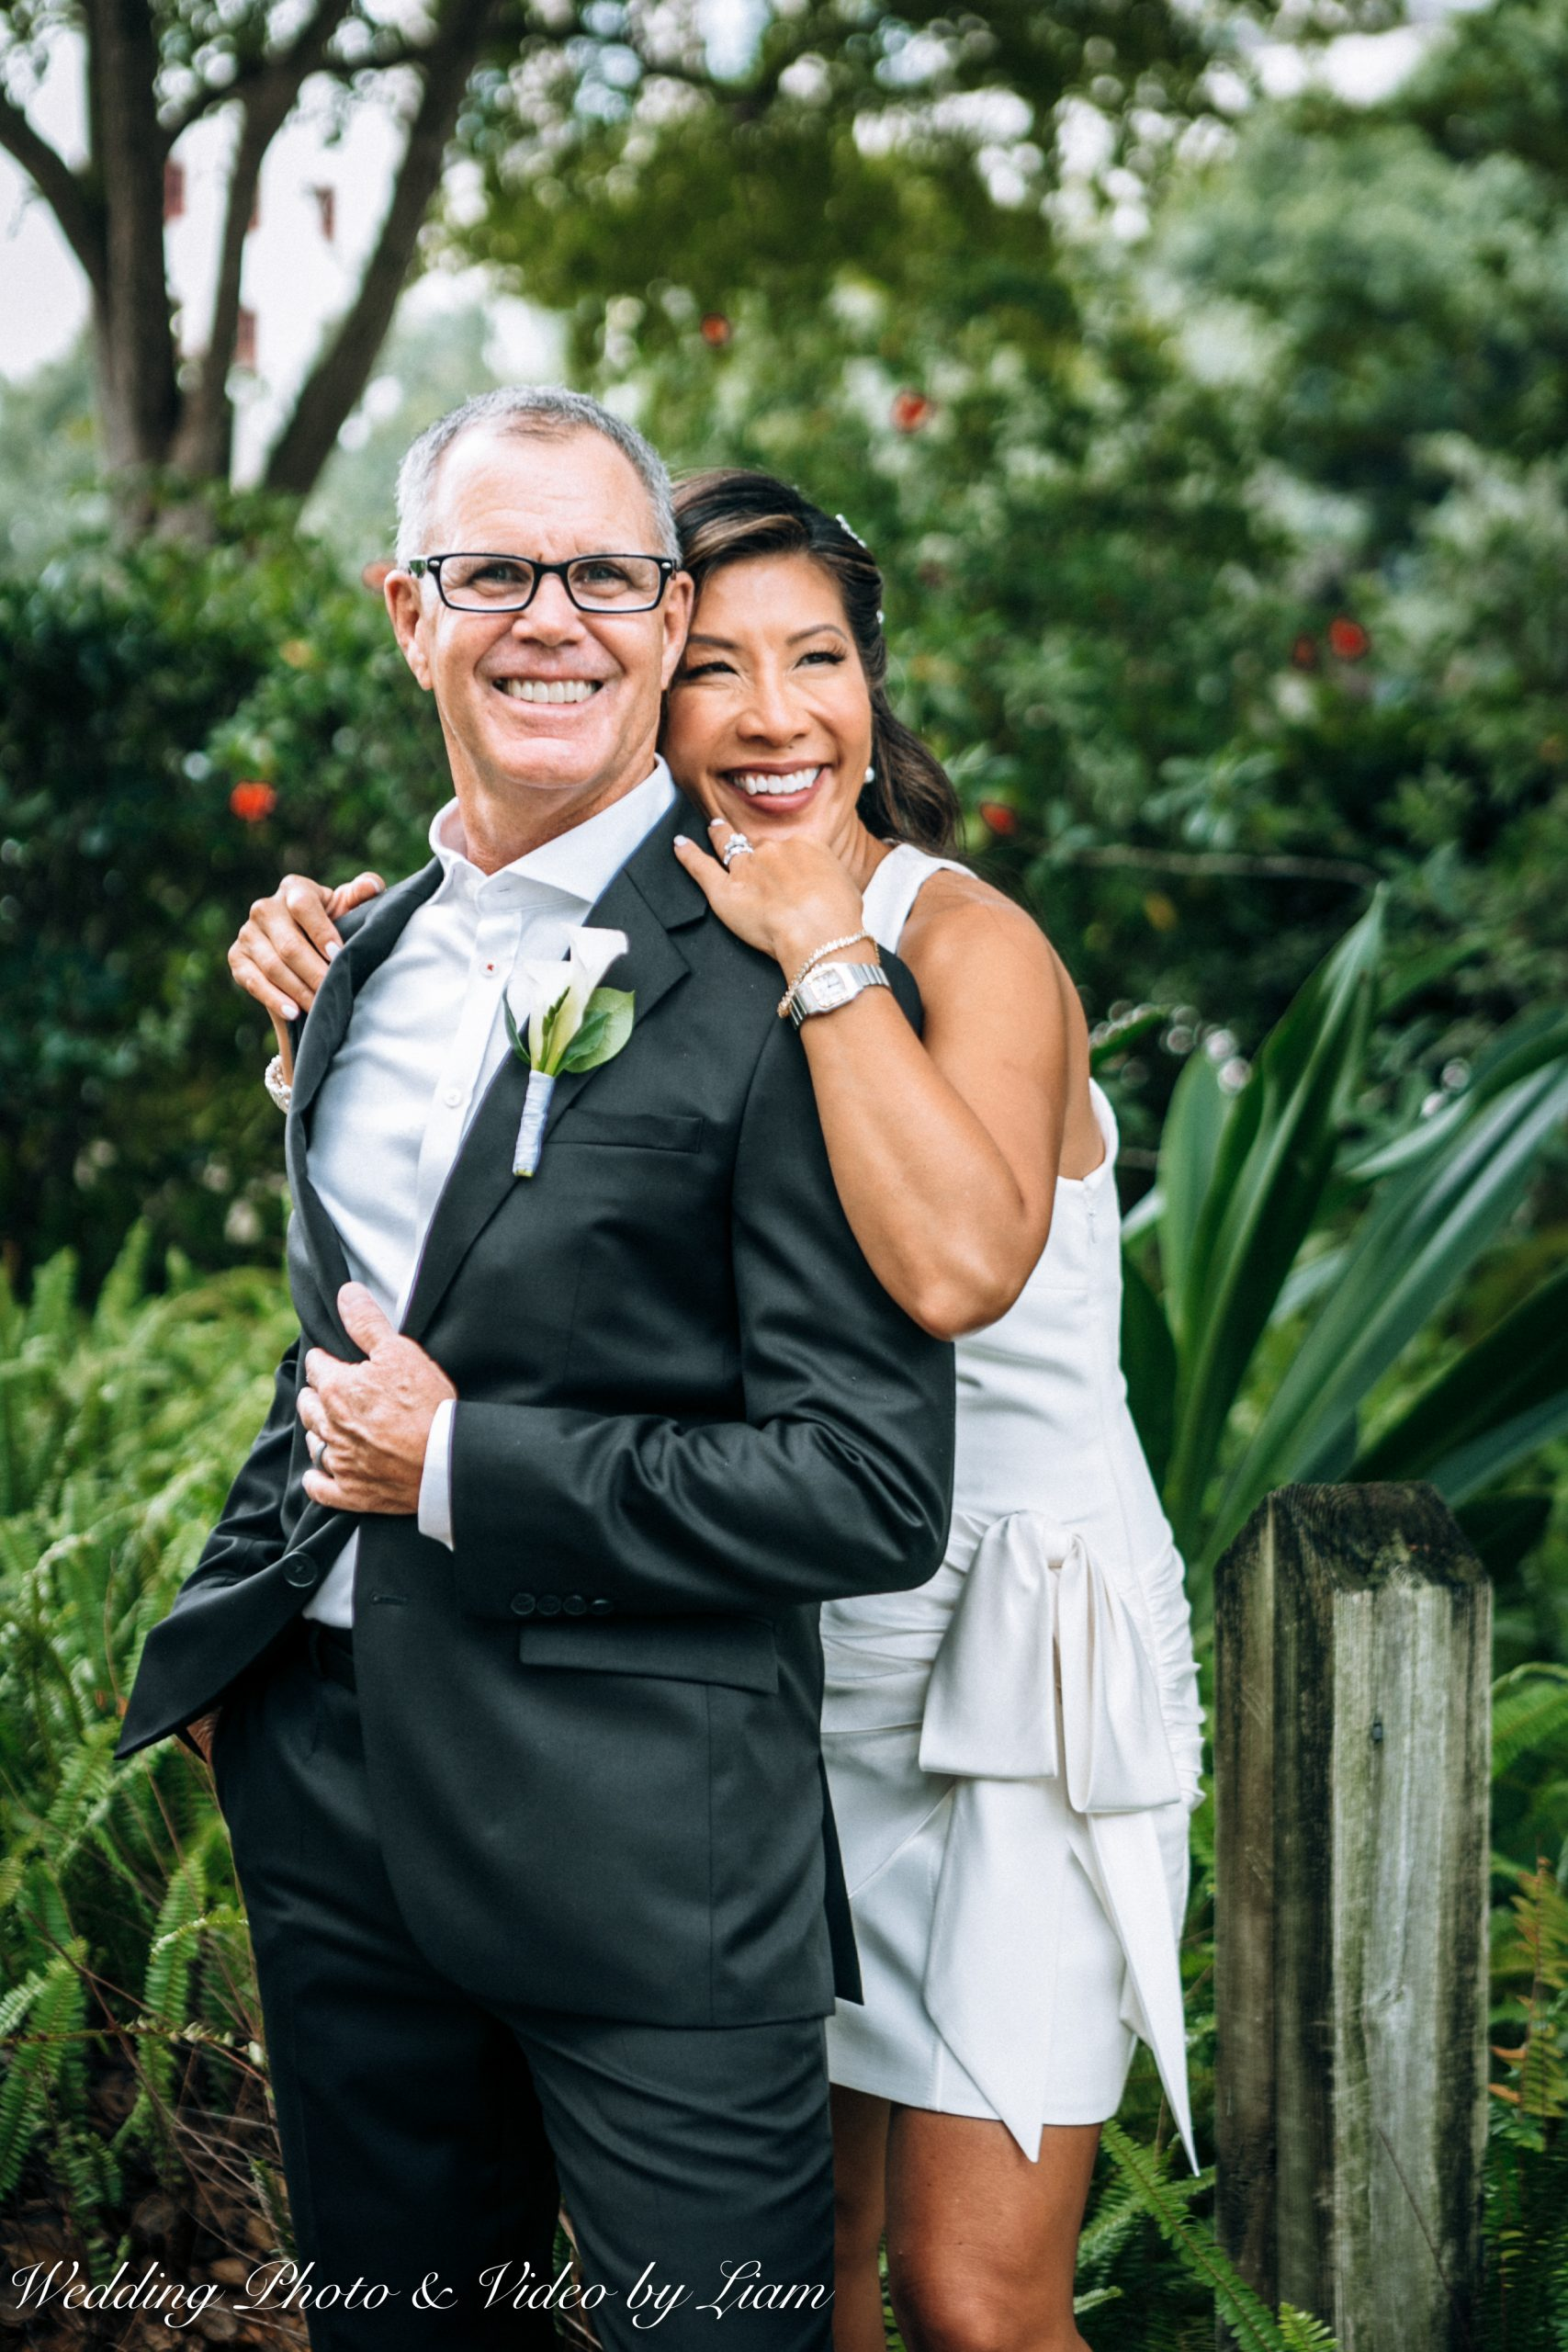 Feature Image Showing Handsome Couple In Wedding Attire